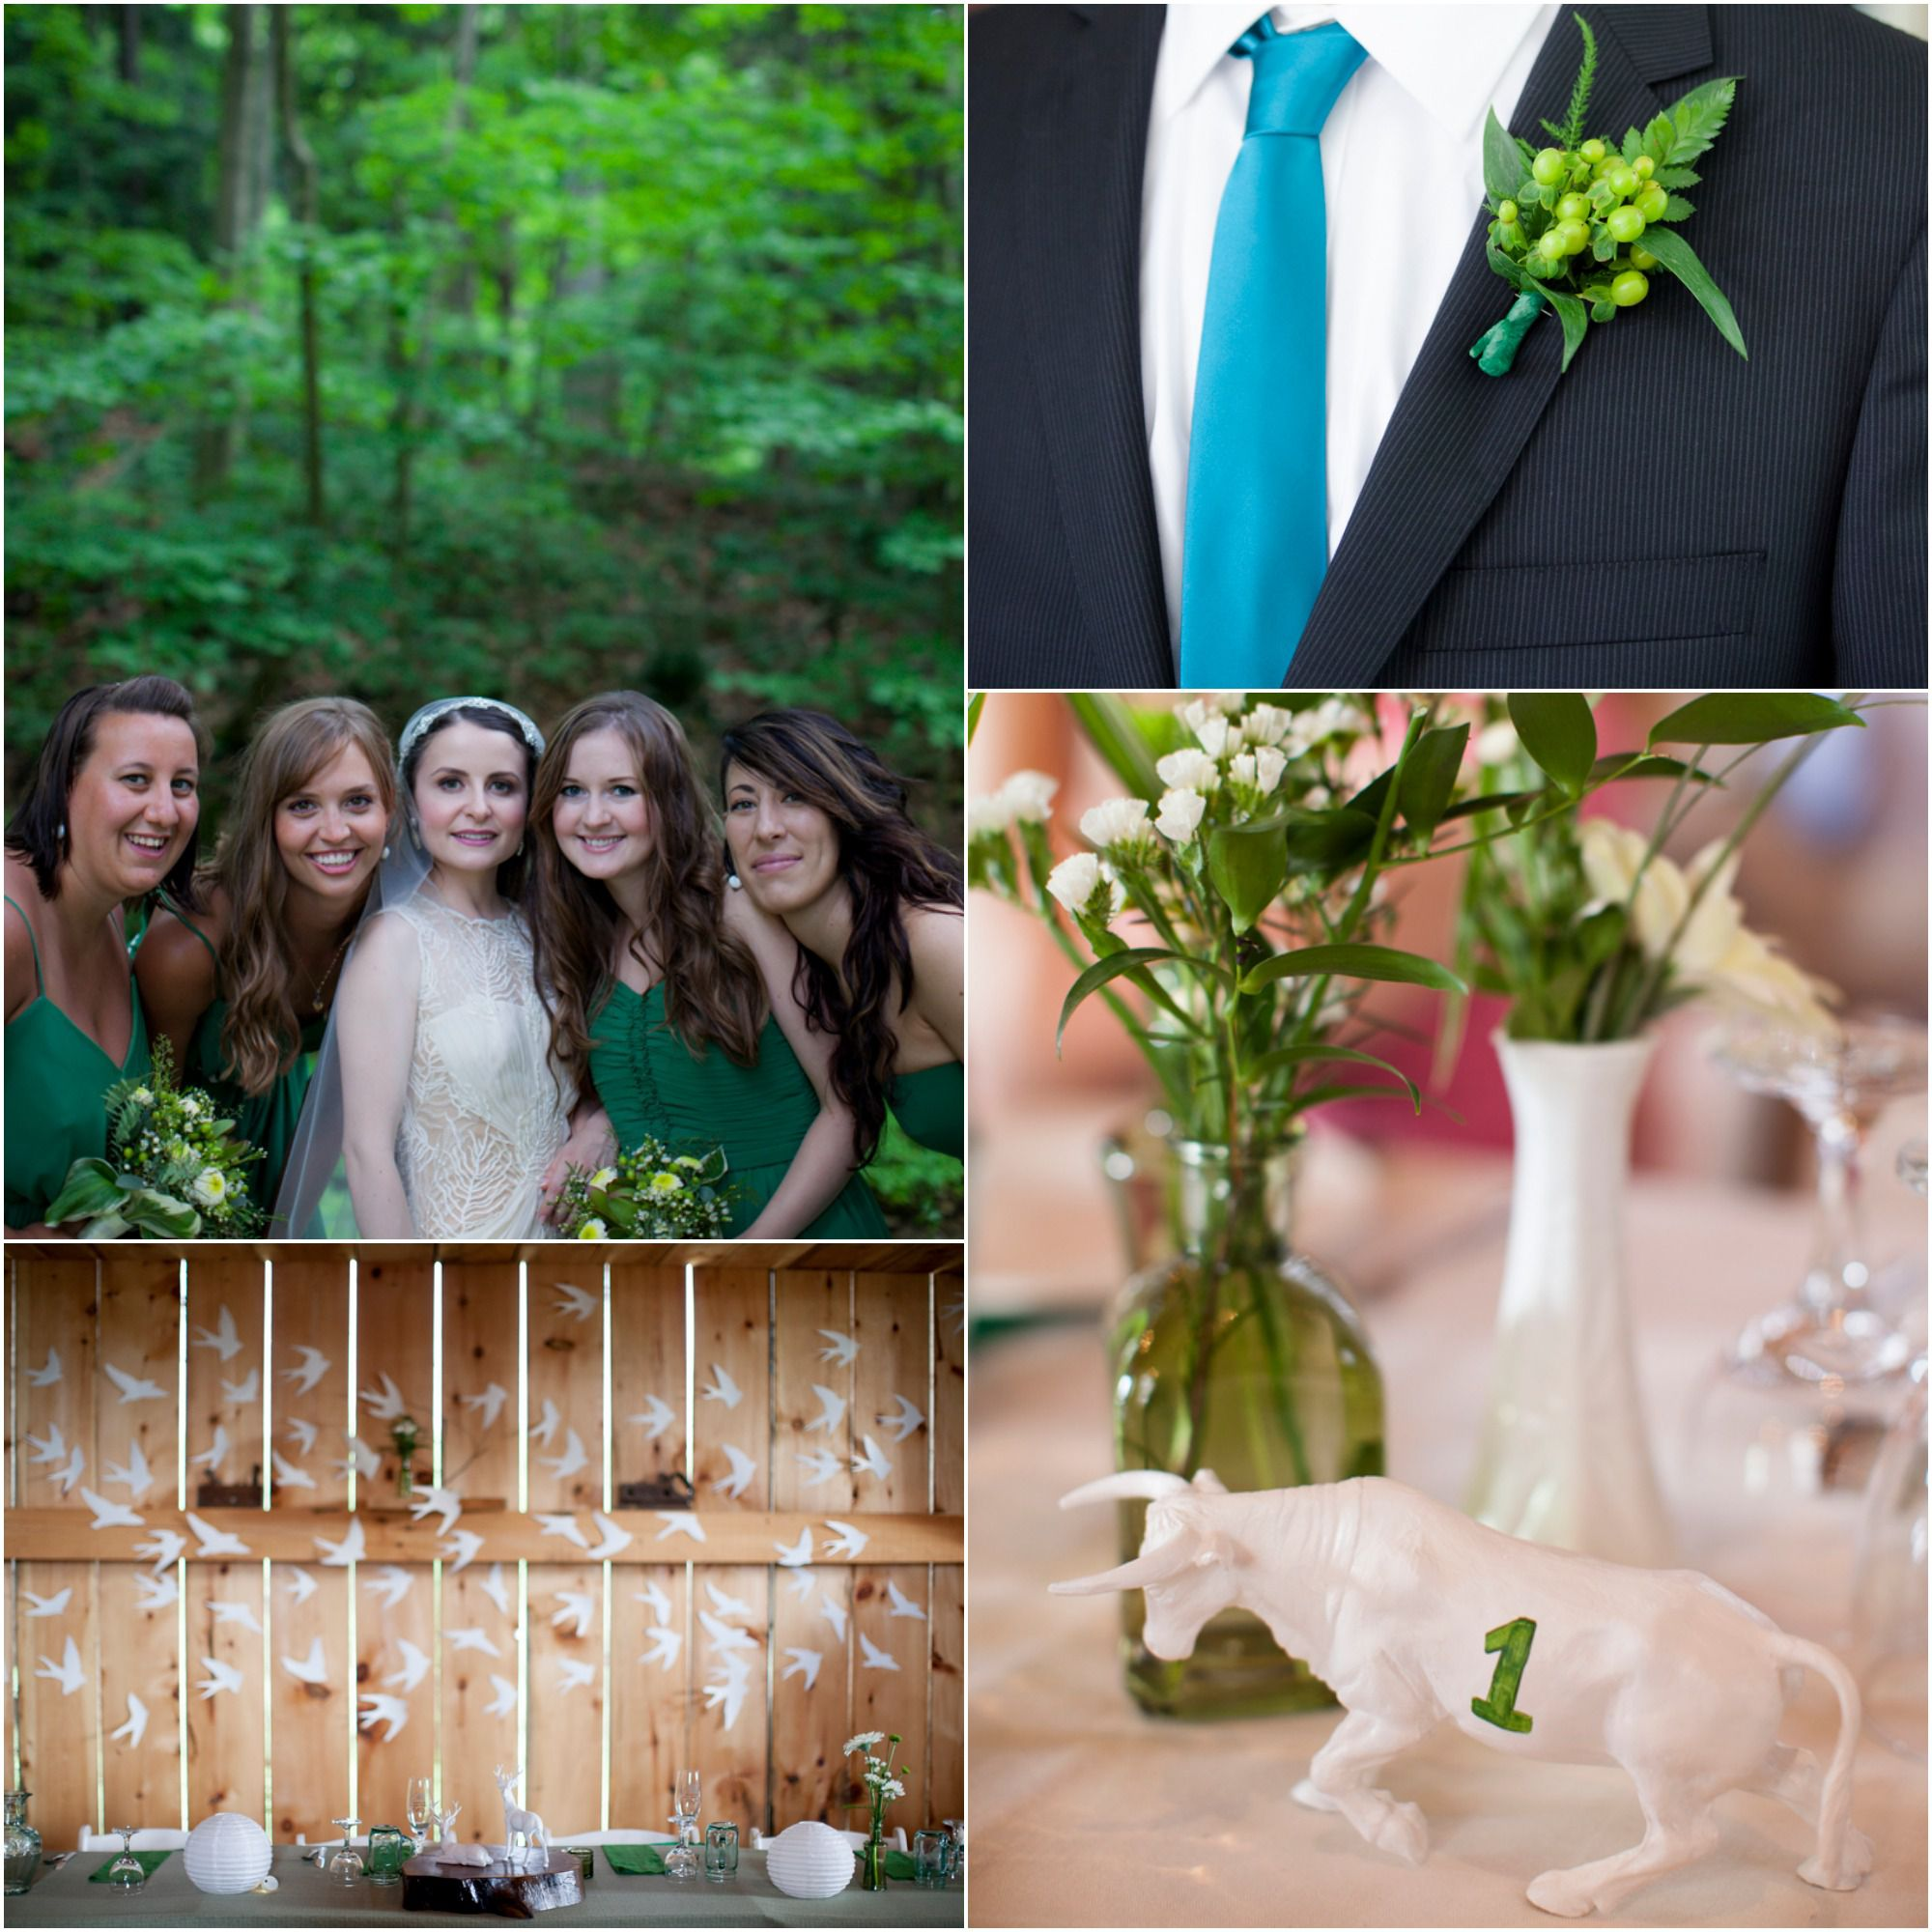 Kinfolk Rustic Inspired Wedding